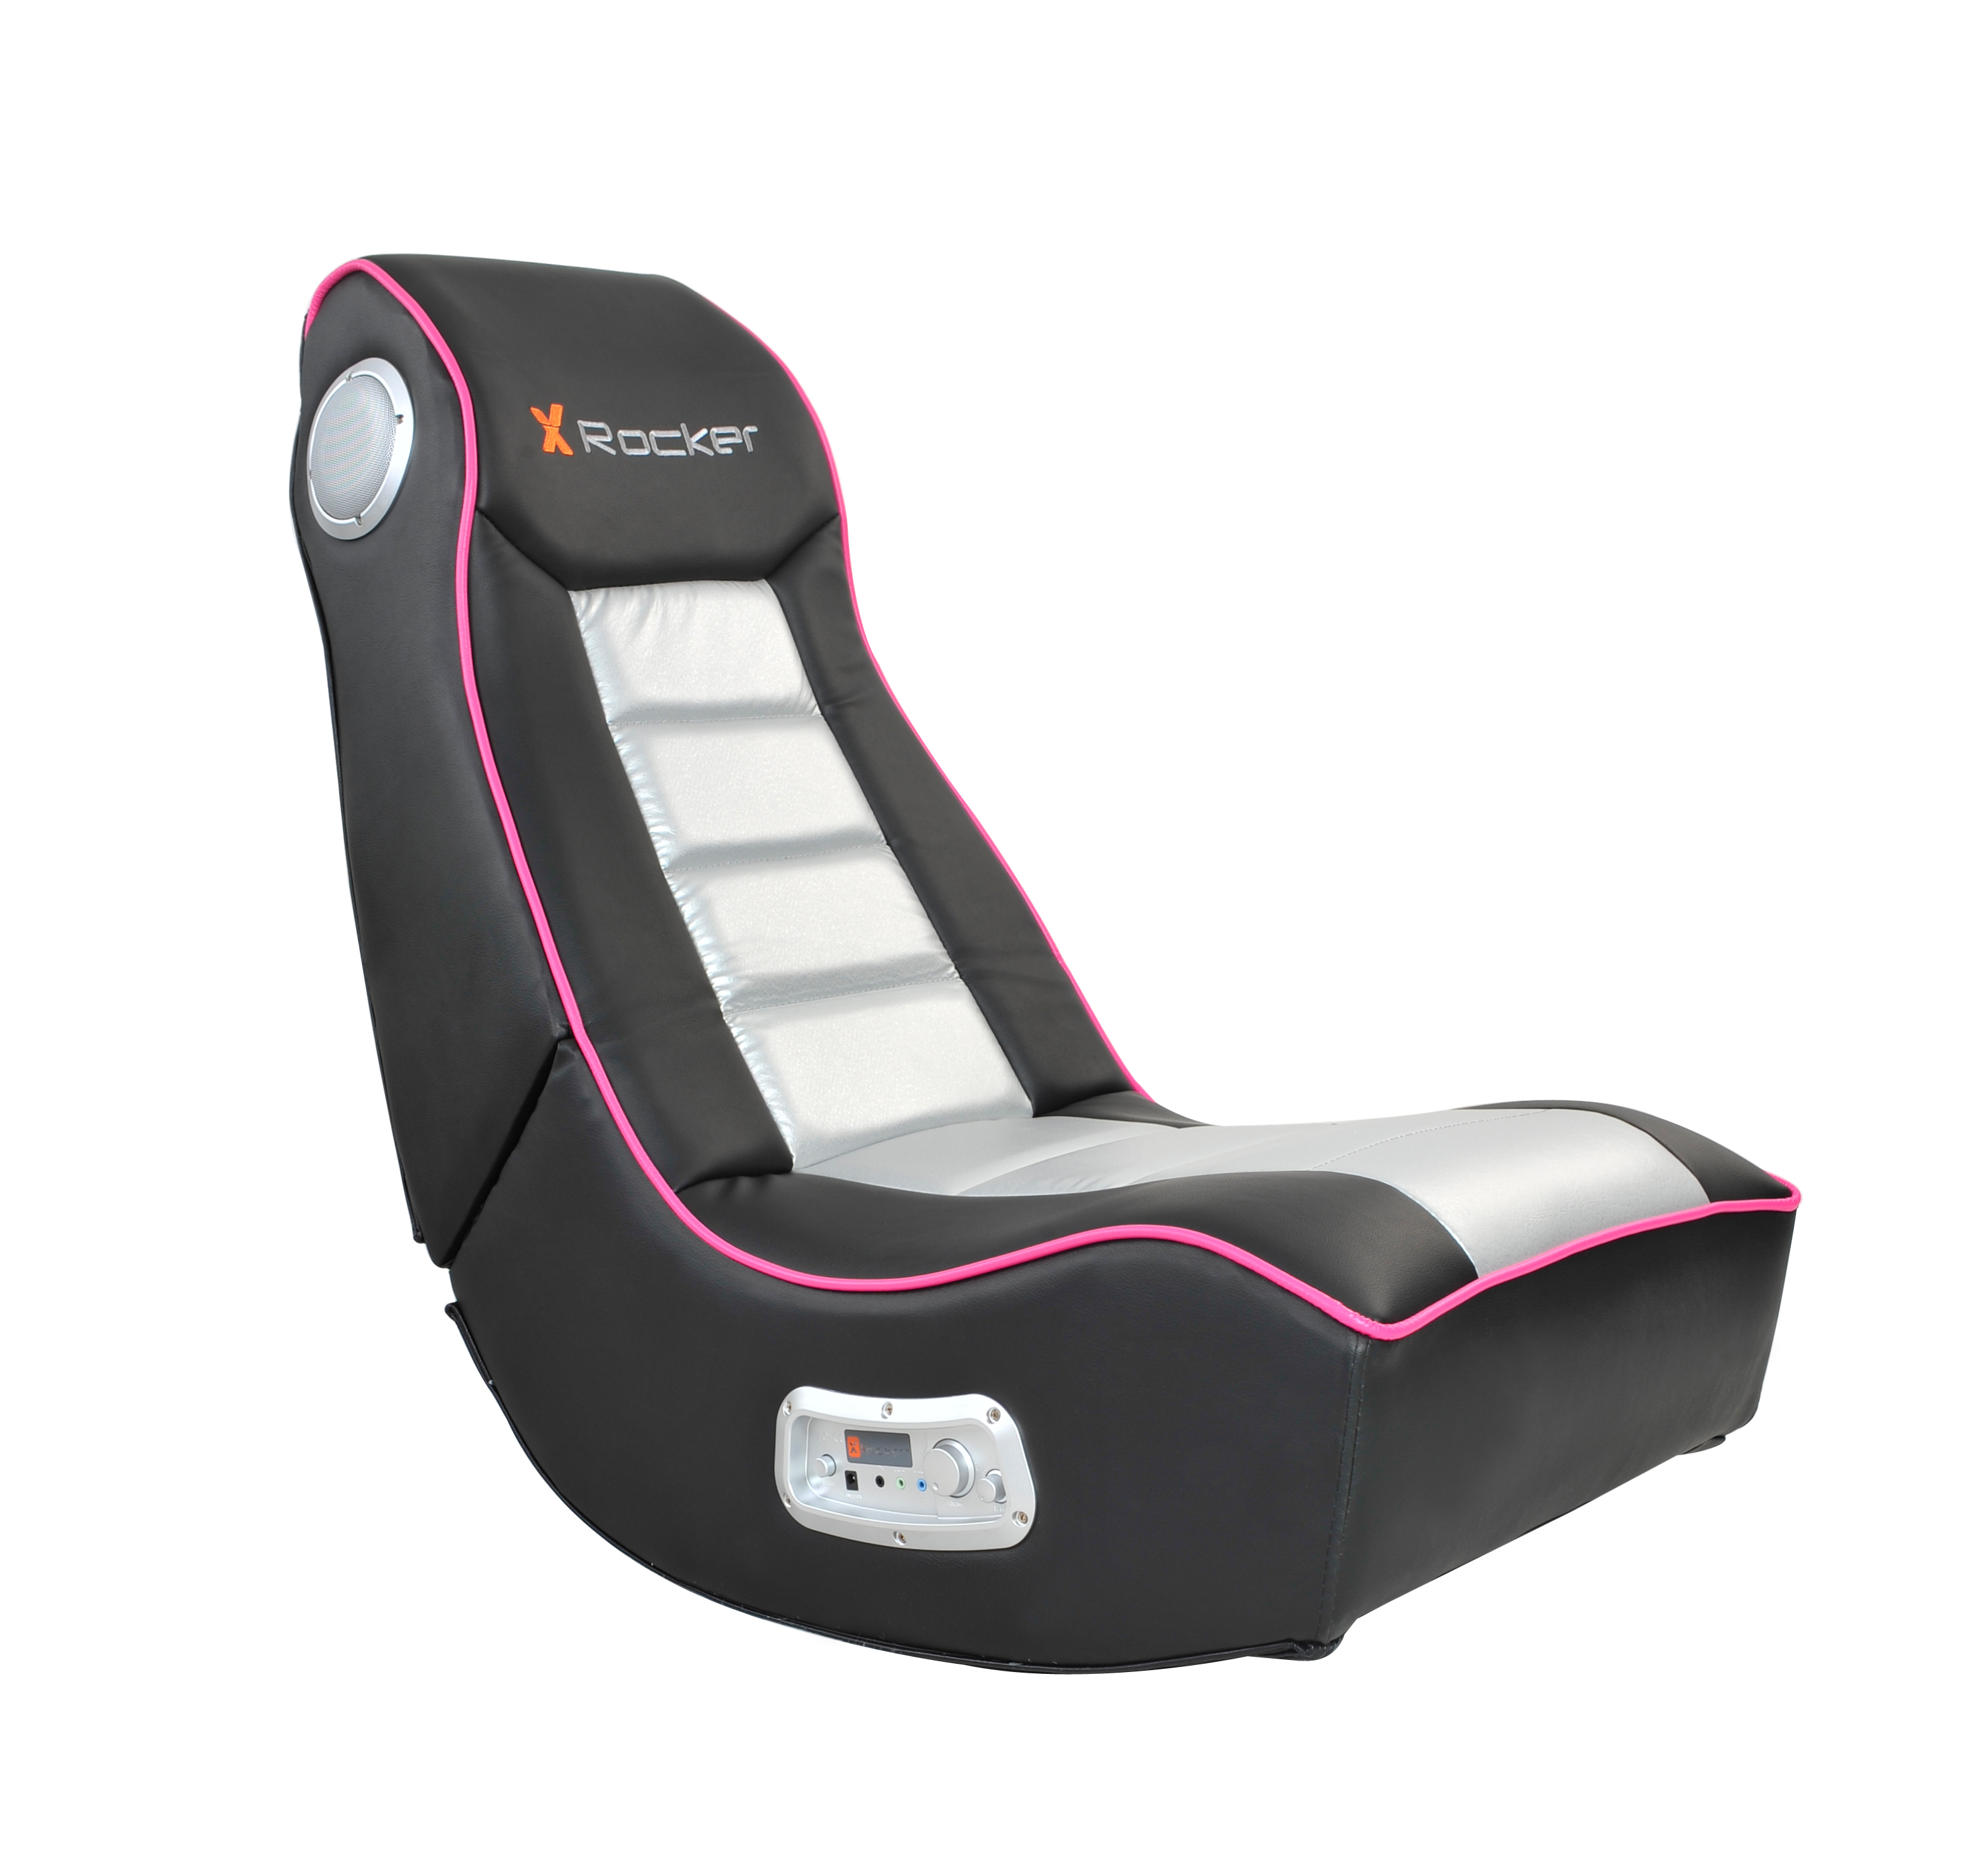 rocking bag chair modern pub table and chairs x rocker 2 1 wired gaming black pink walmart com